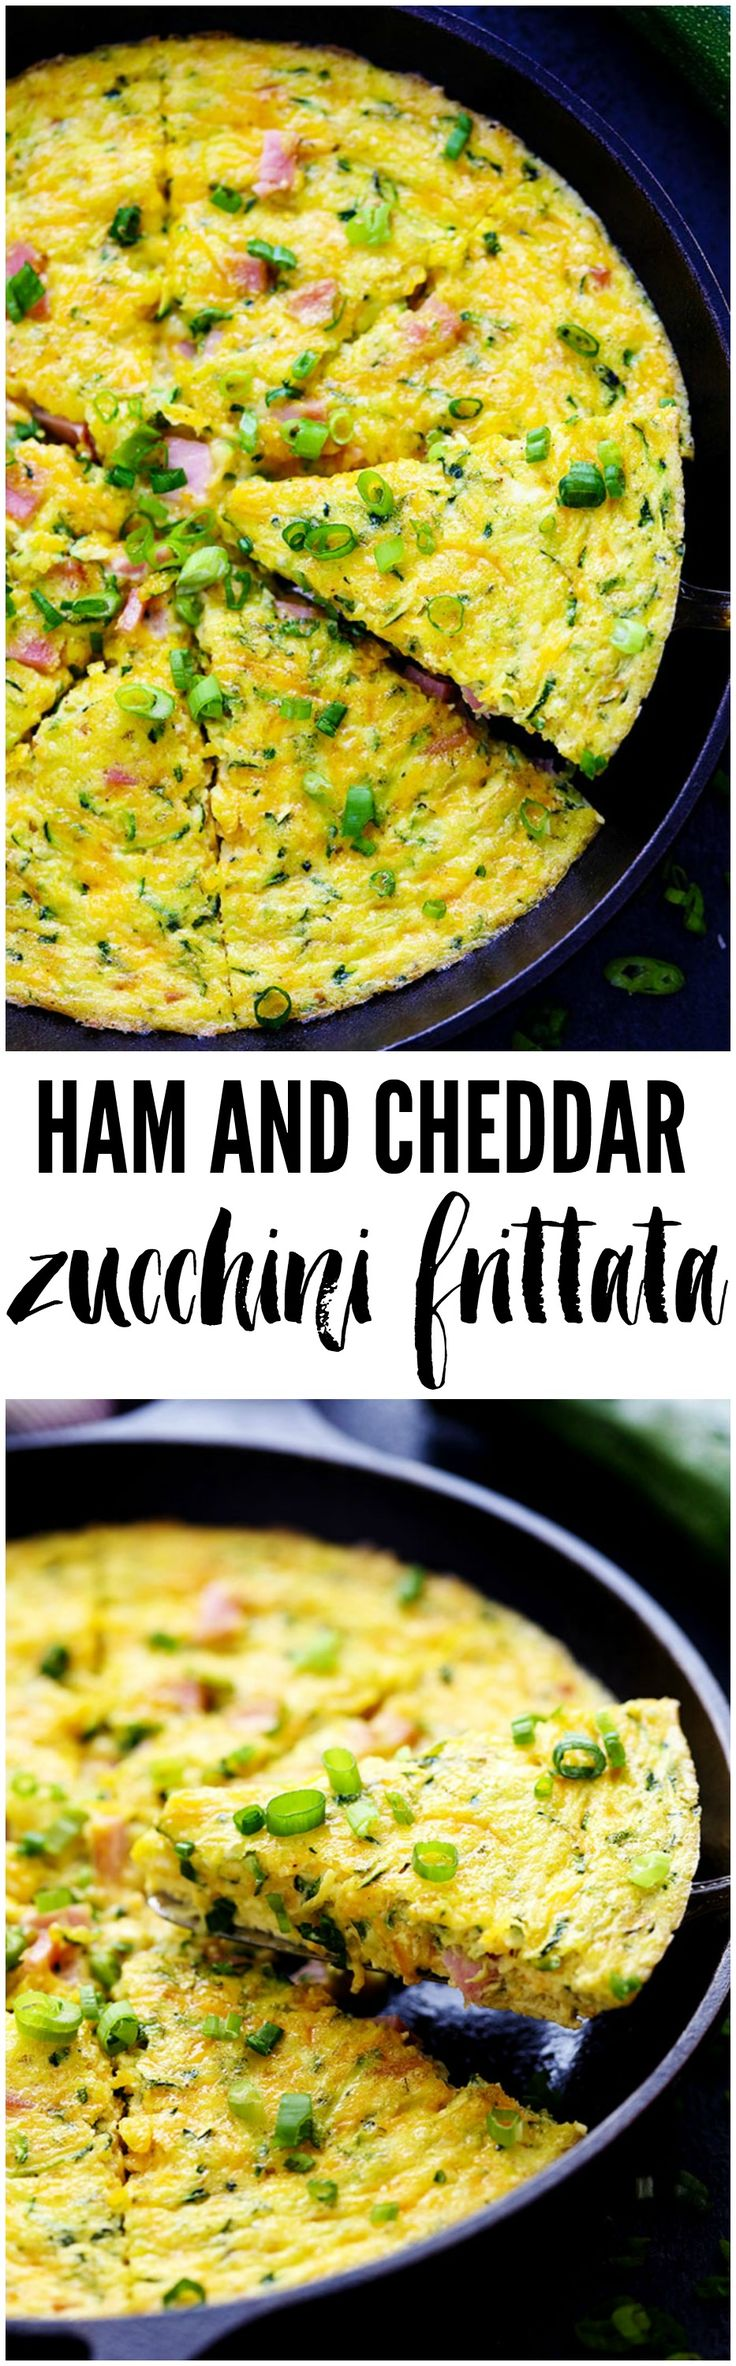 Ham and Cheddar Zucchini Frittata is filled with two cups of zucchini, ham, and cheddar cheese. It has such amazing flavor and will be devoured in no time at all!